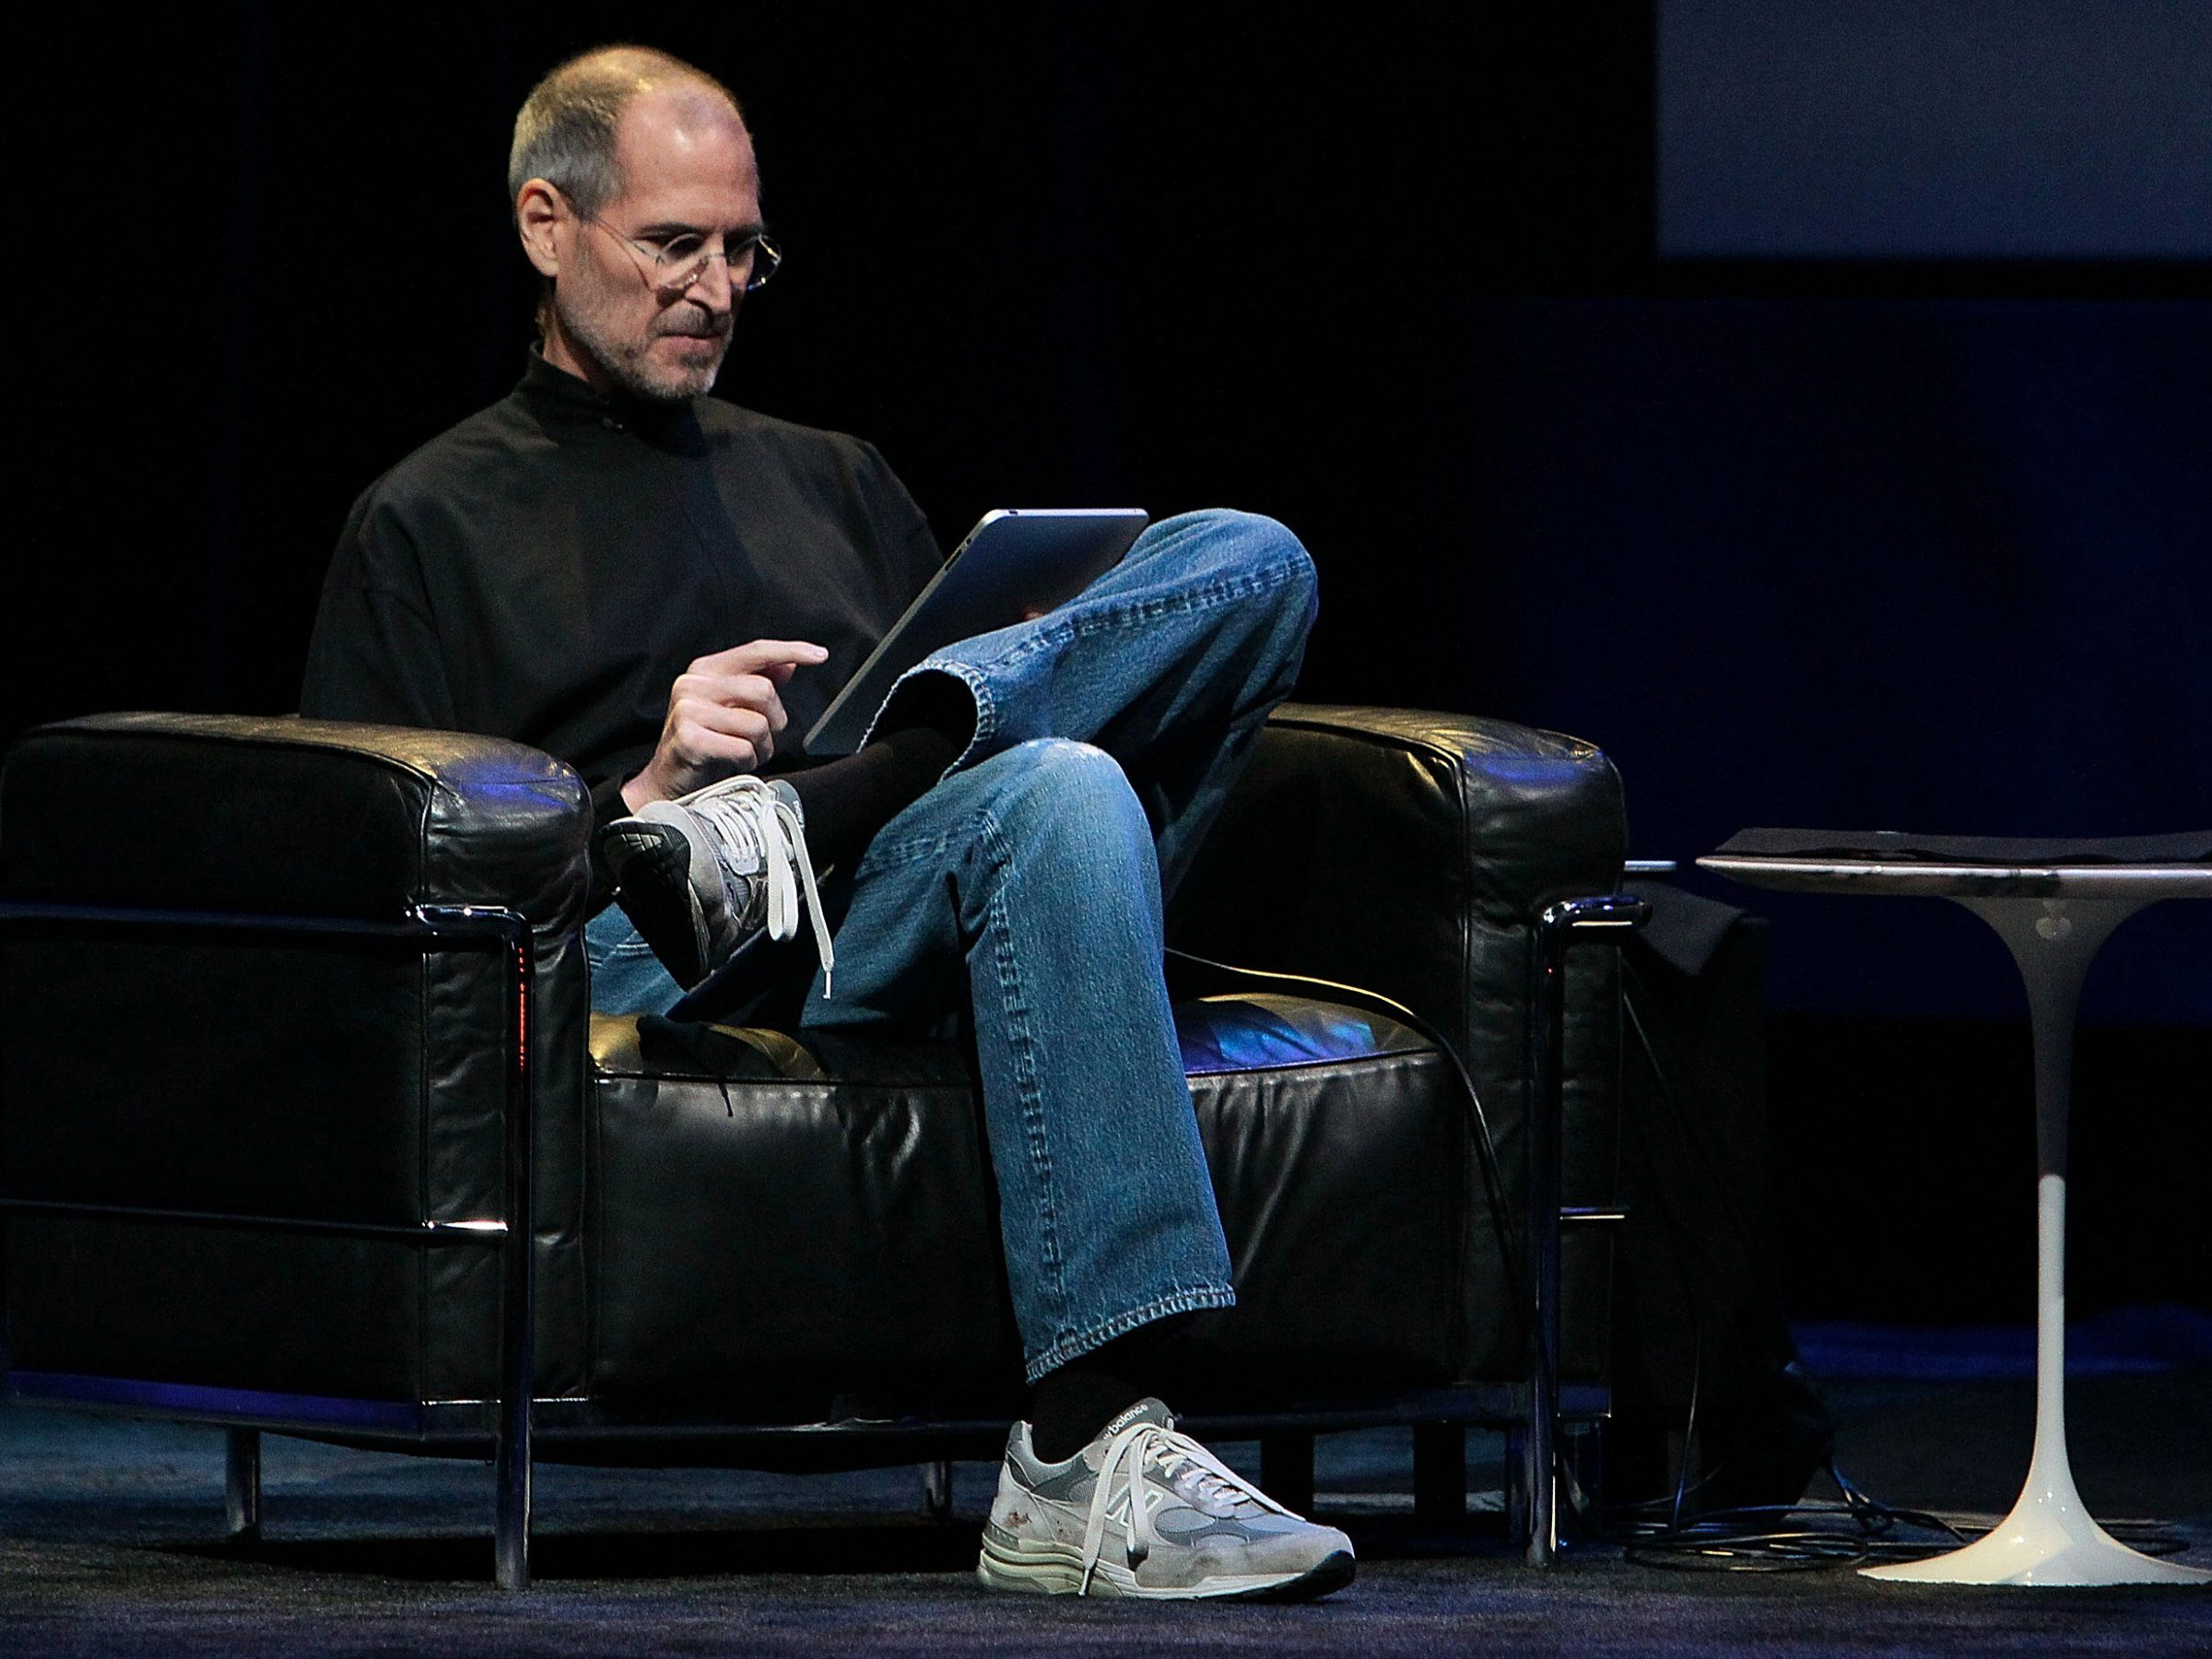 Apple CEO Steve Jobs demonstrates the iPad in 2010. (Photo Credit: Justin Sullivan / Getty Images)